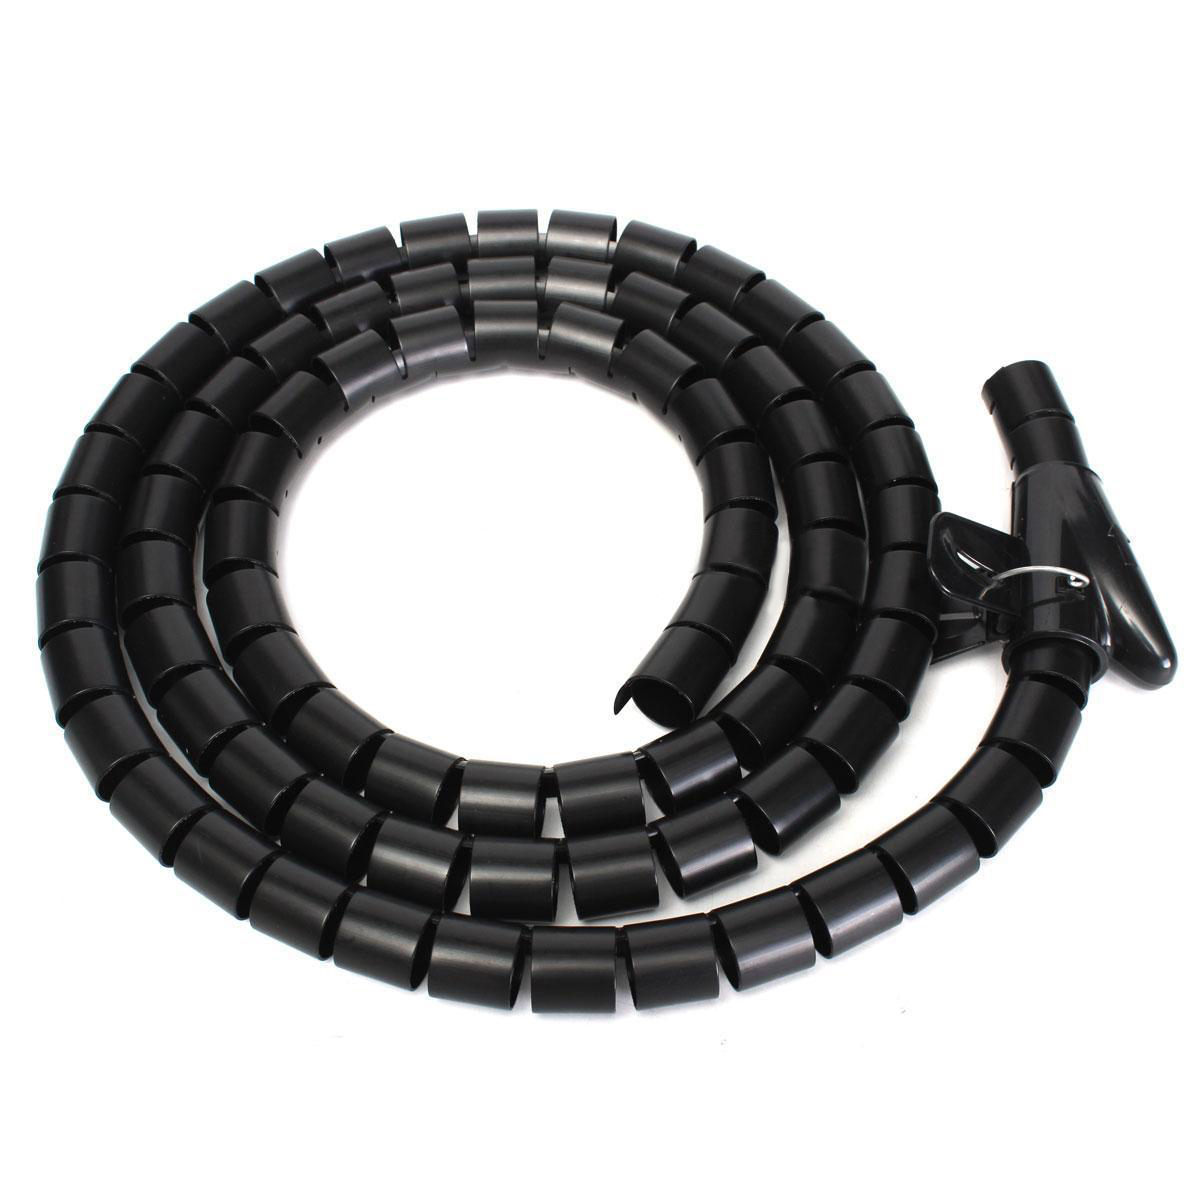 1pc 25mm Cable Spiral Wrap Tool Black Spiral Wrapping Band Tidy Cord ...